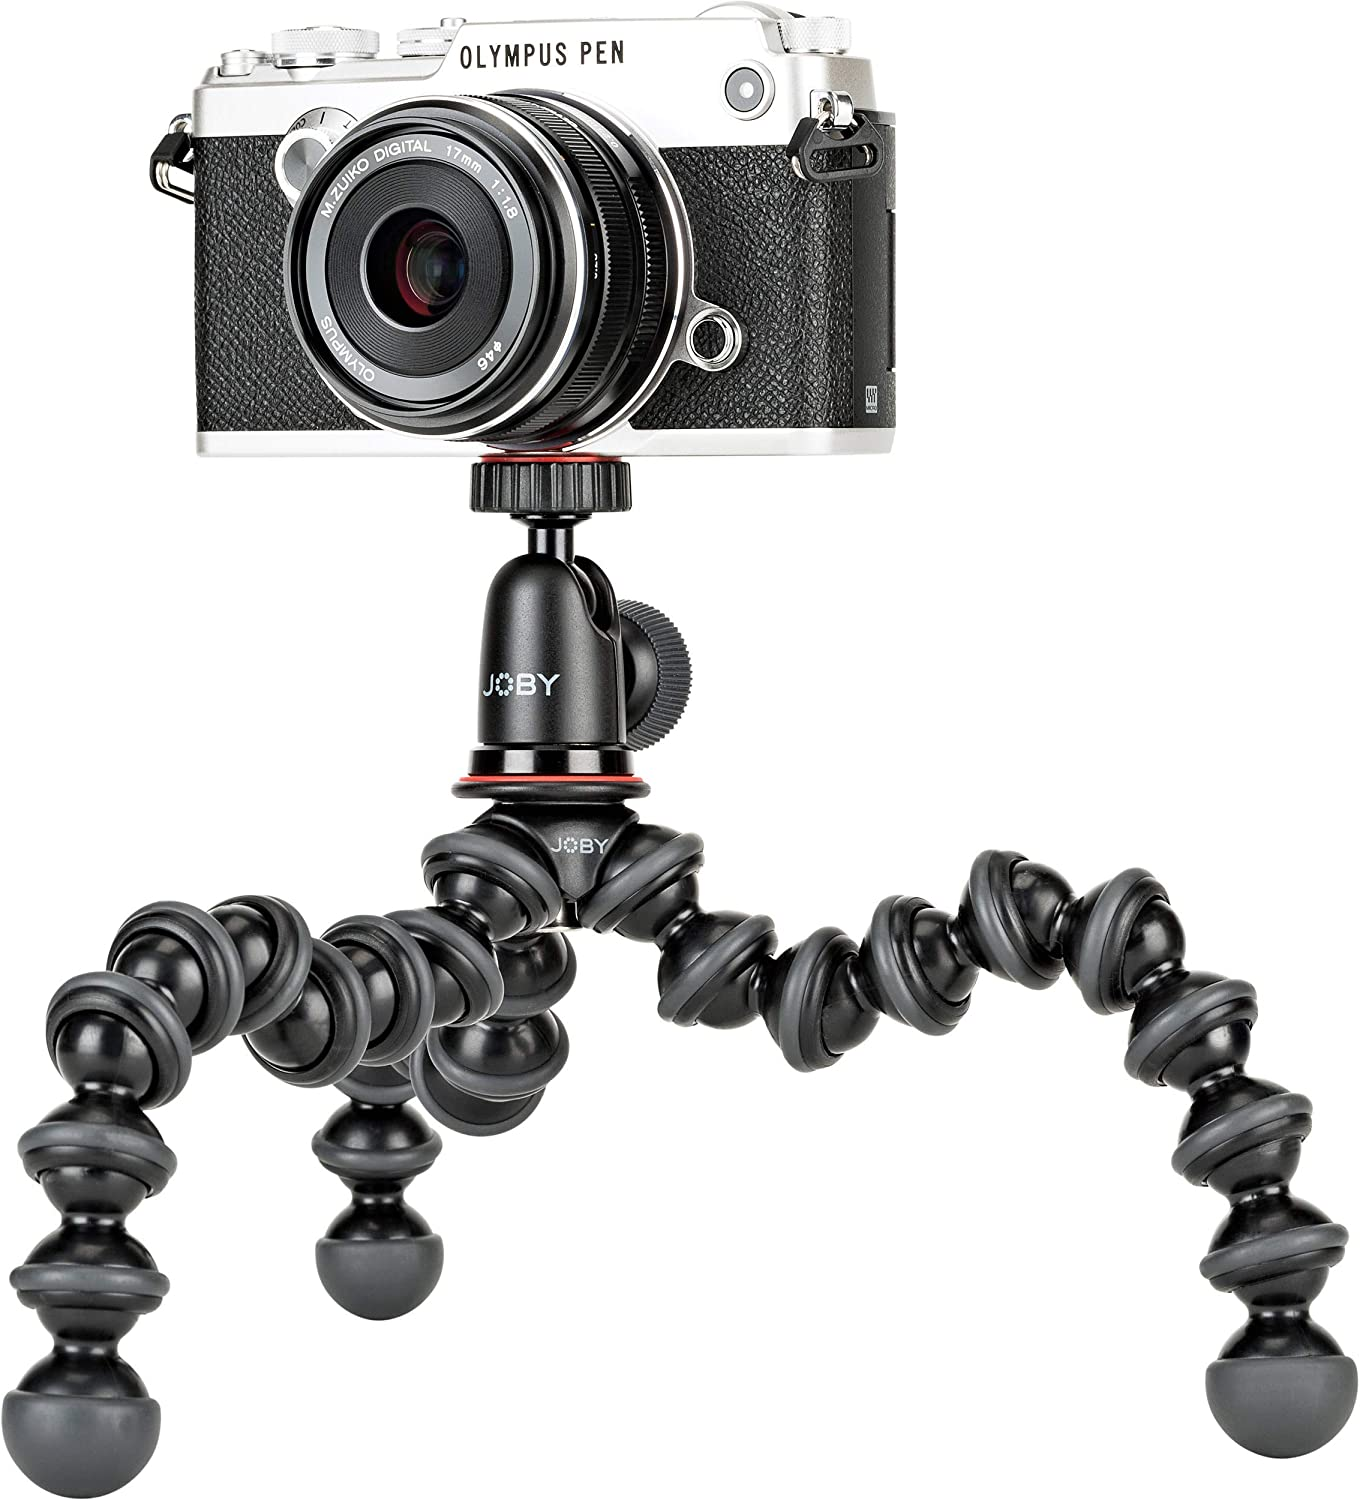 Gorilla pod - great travel compact tripod